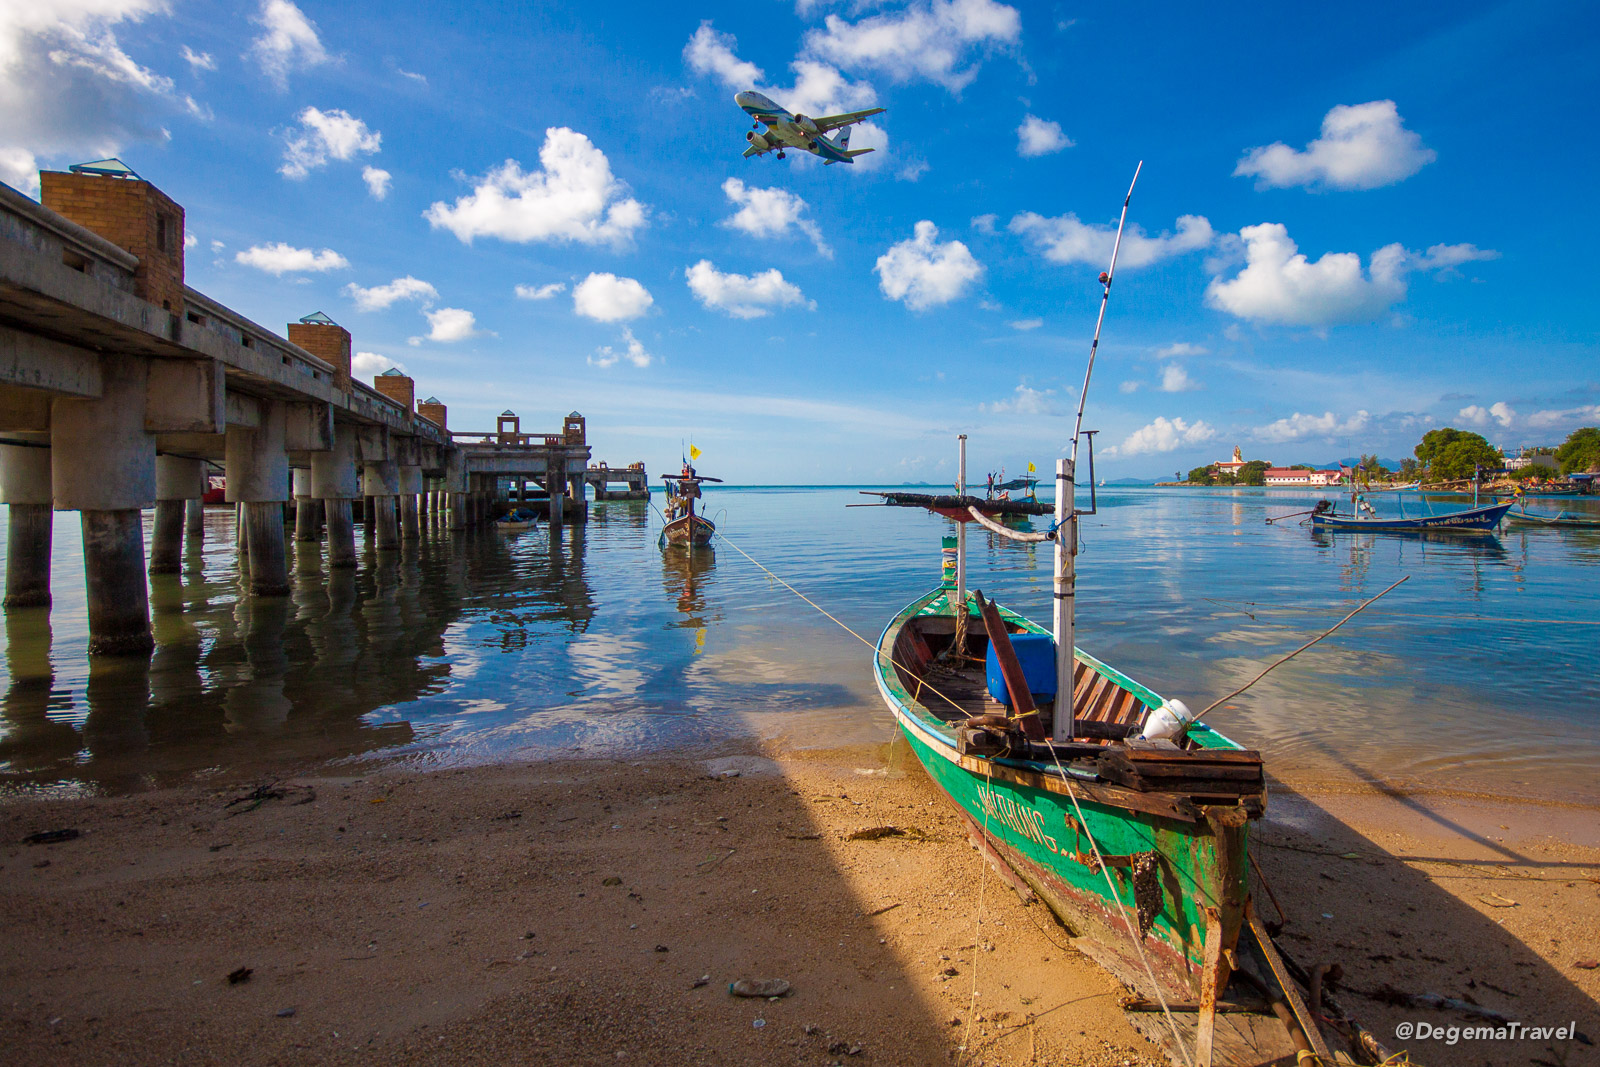 A fishing boat under the approach path to Koh Samui Airport in Thailand